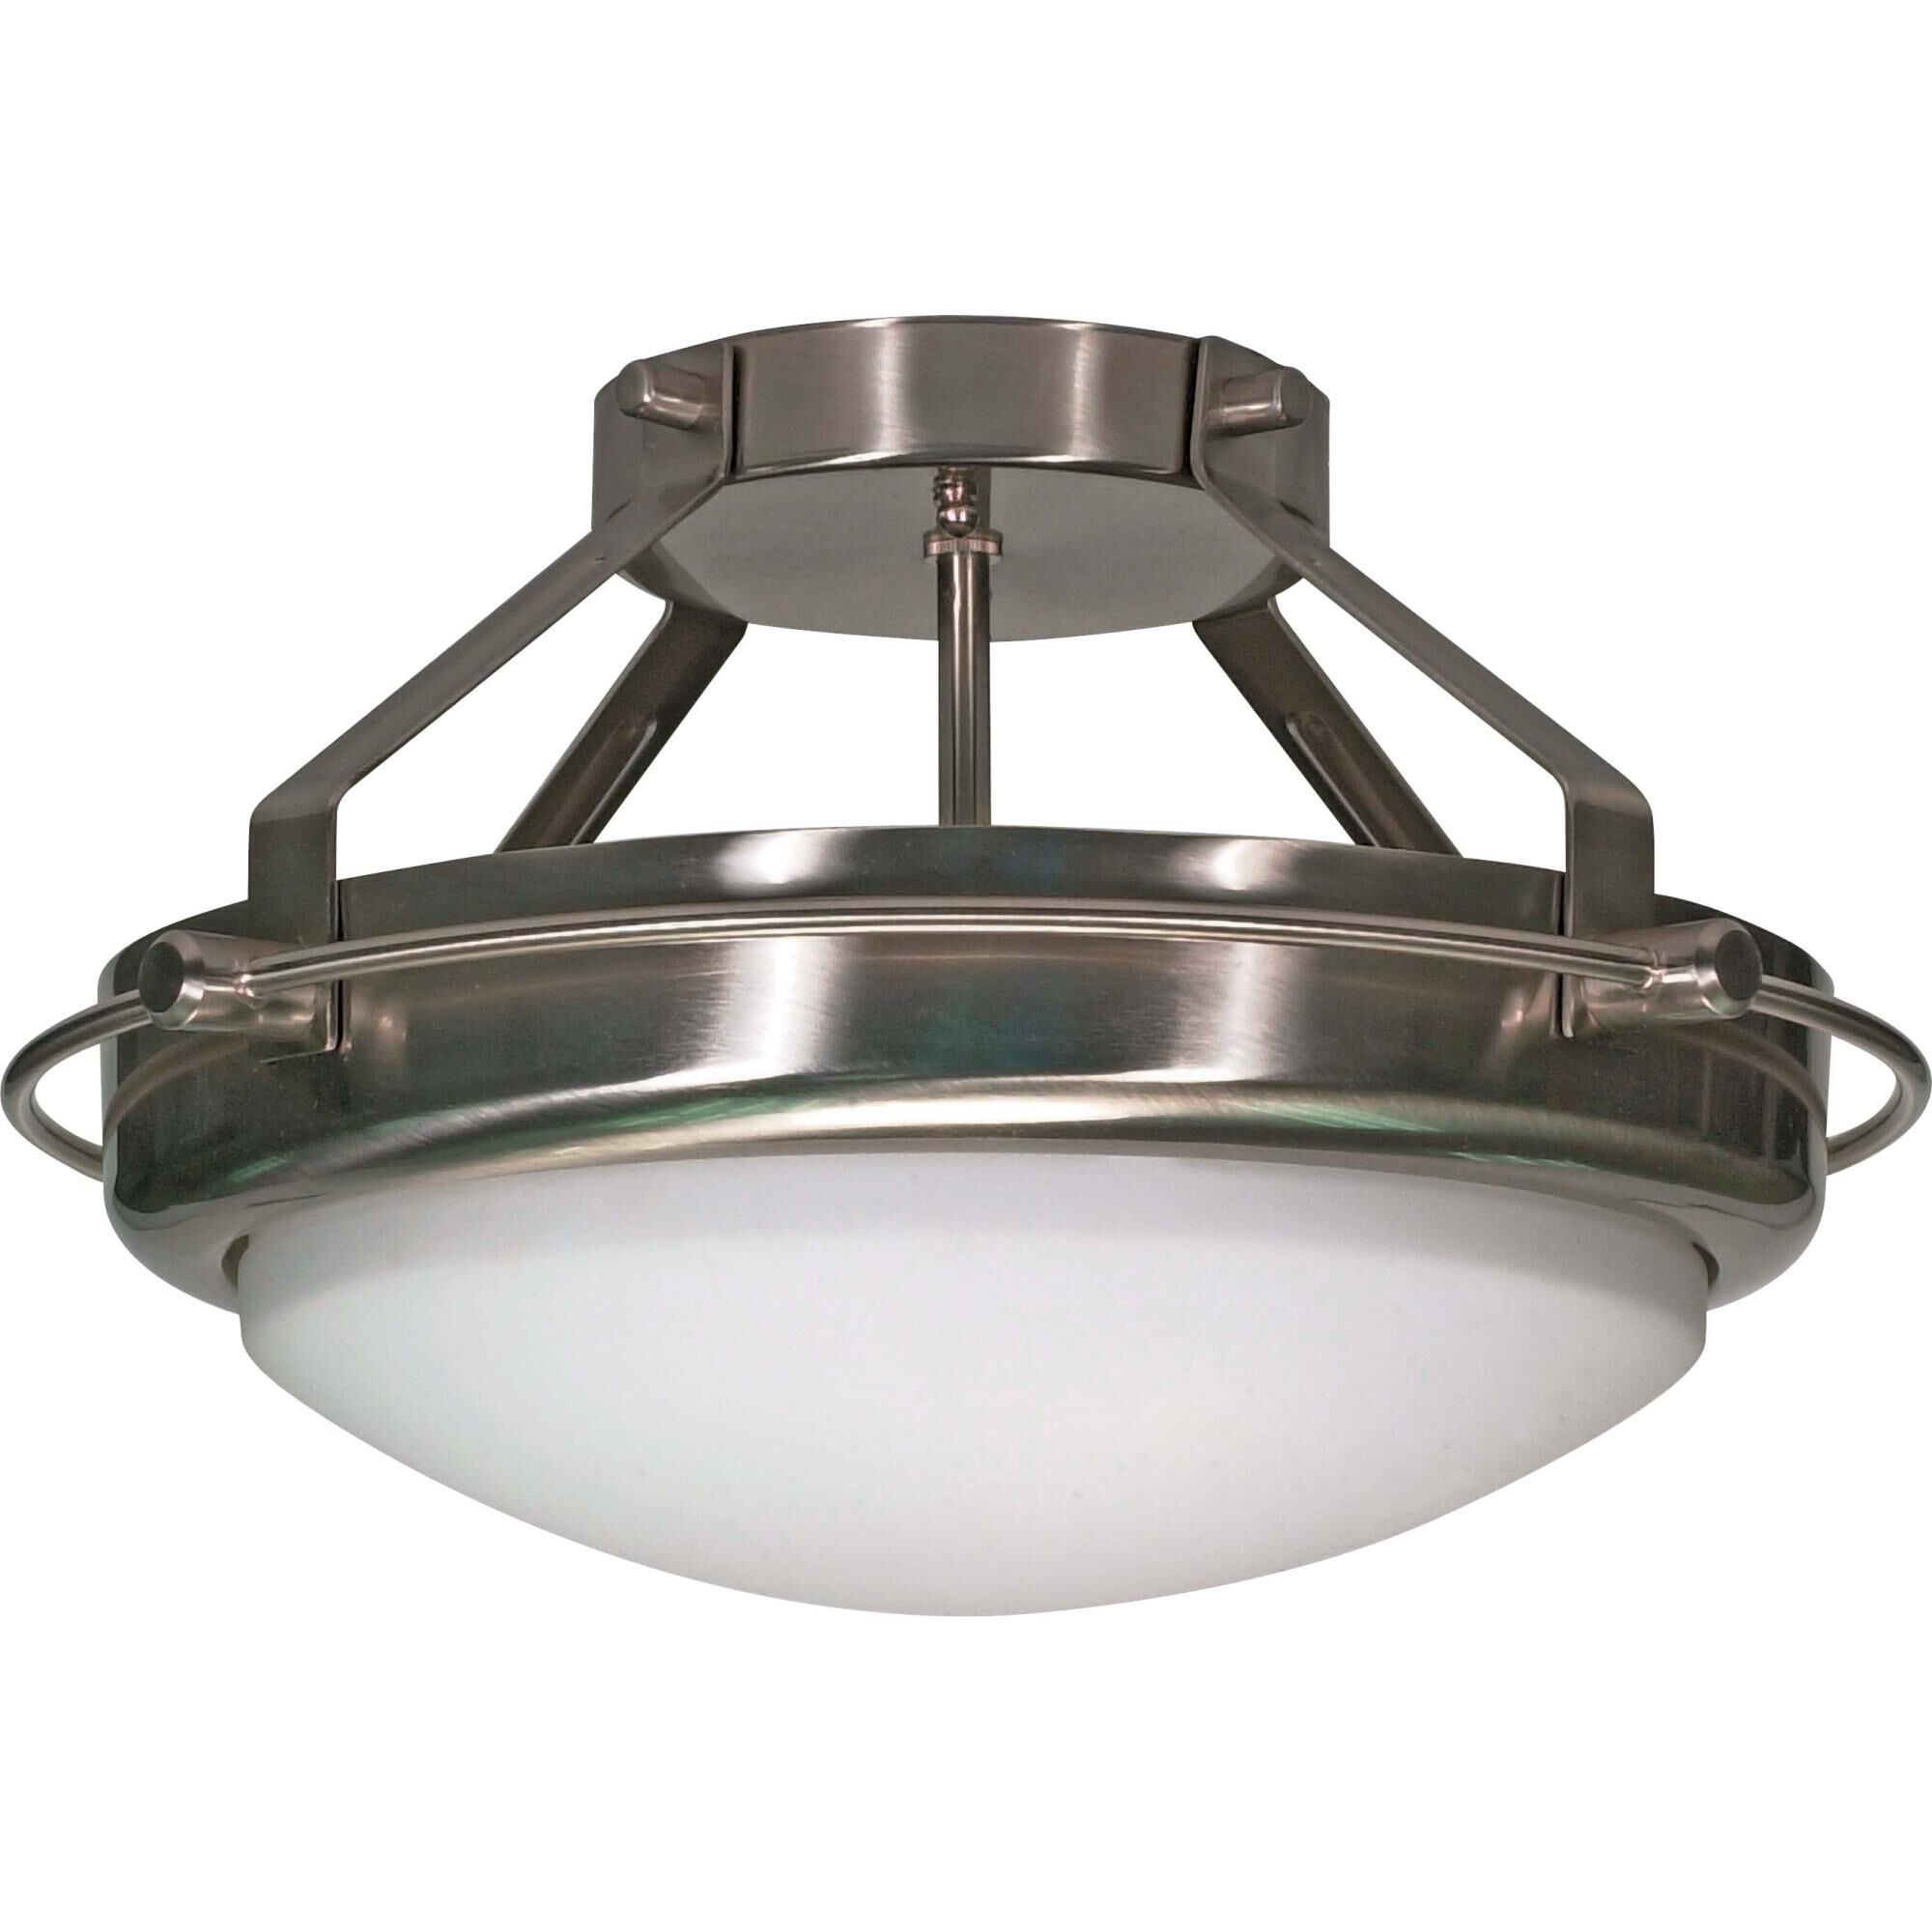 Nuvo Lighting Polaris 14 Inch 2 Light Semi Flush Mount Polaris - 60/609 - Transitional Semi Flush Mount